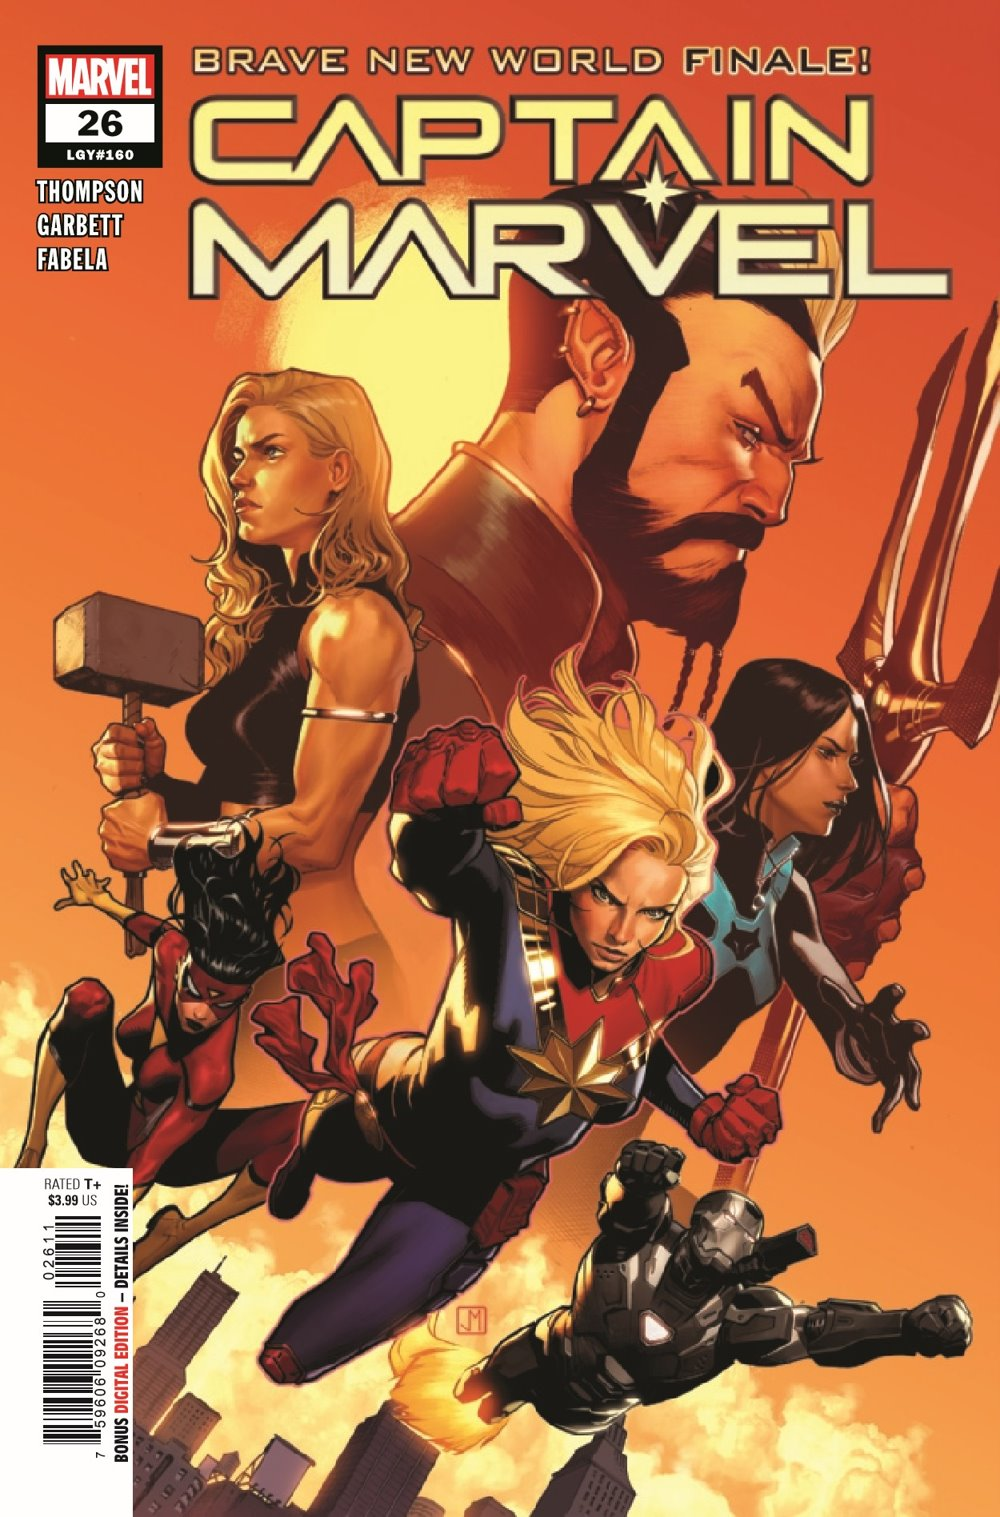 CAPMARV2019026_Preview-1 ComicList Previews: CAPTAIN MARVEL #26